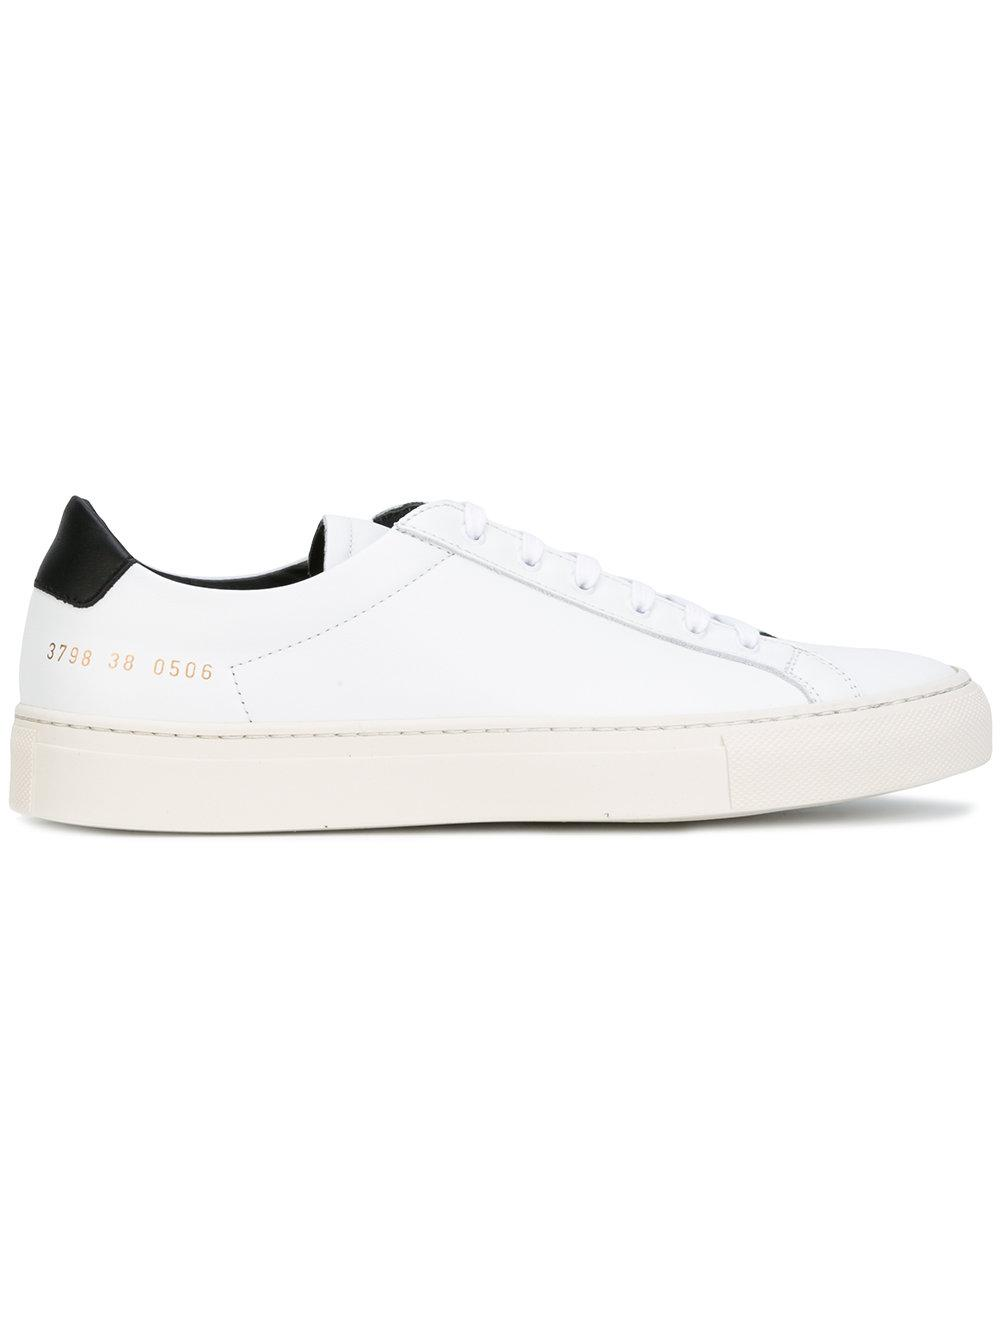 common projects achille retro sneakers women calf leather leather rubber 37 in white lyst. Black Bedroom Furniture Sets. Home Design Ideas